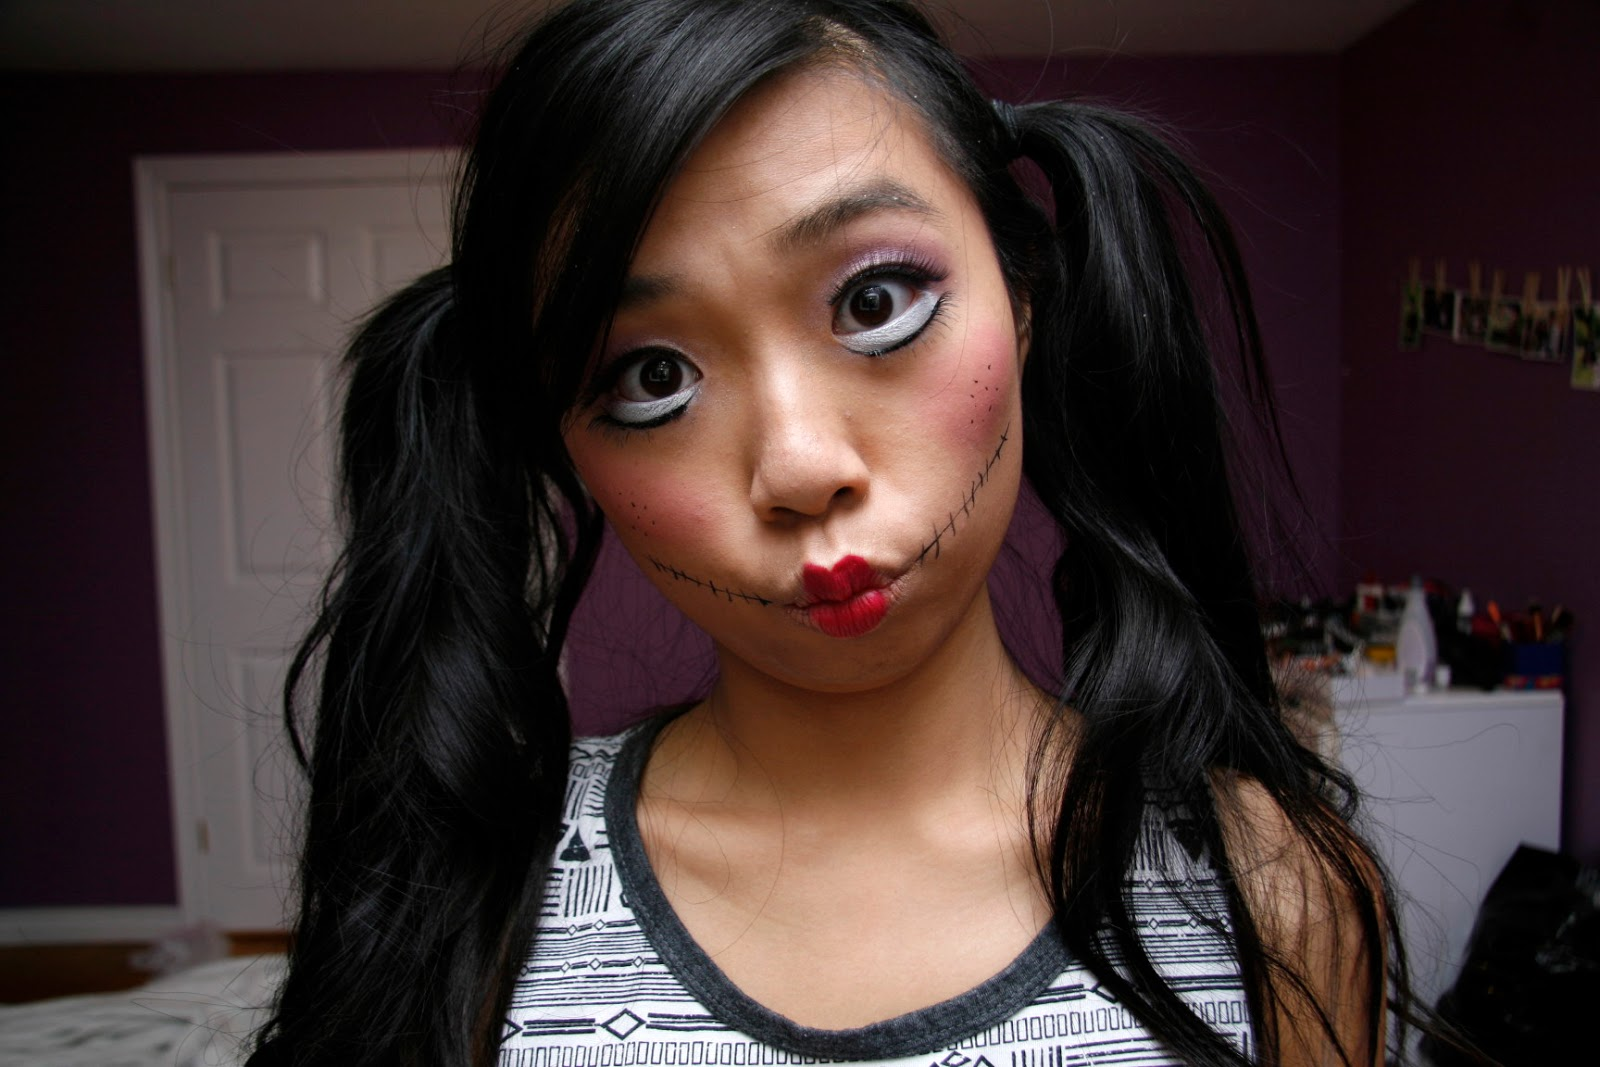 Fish Face Makeup Smaller For a Fish Face